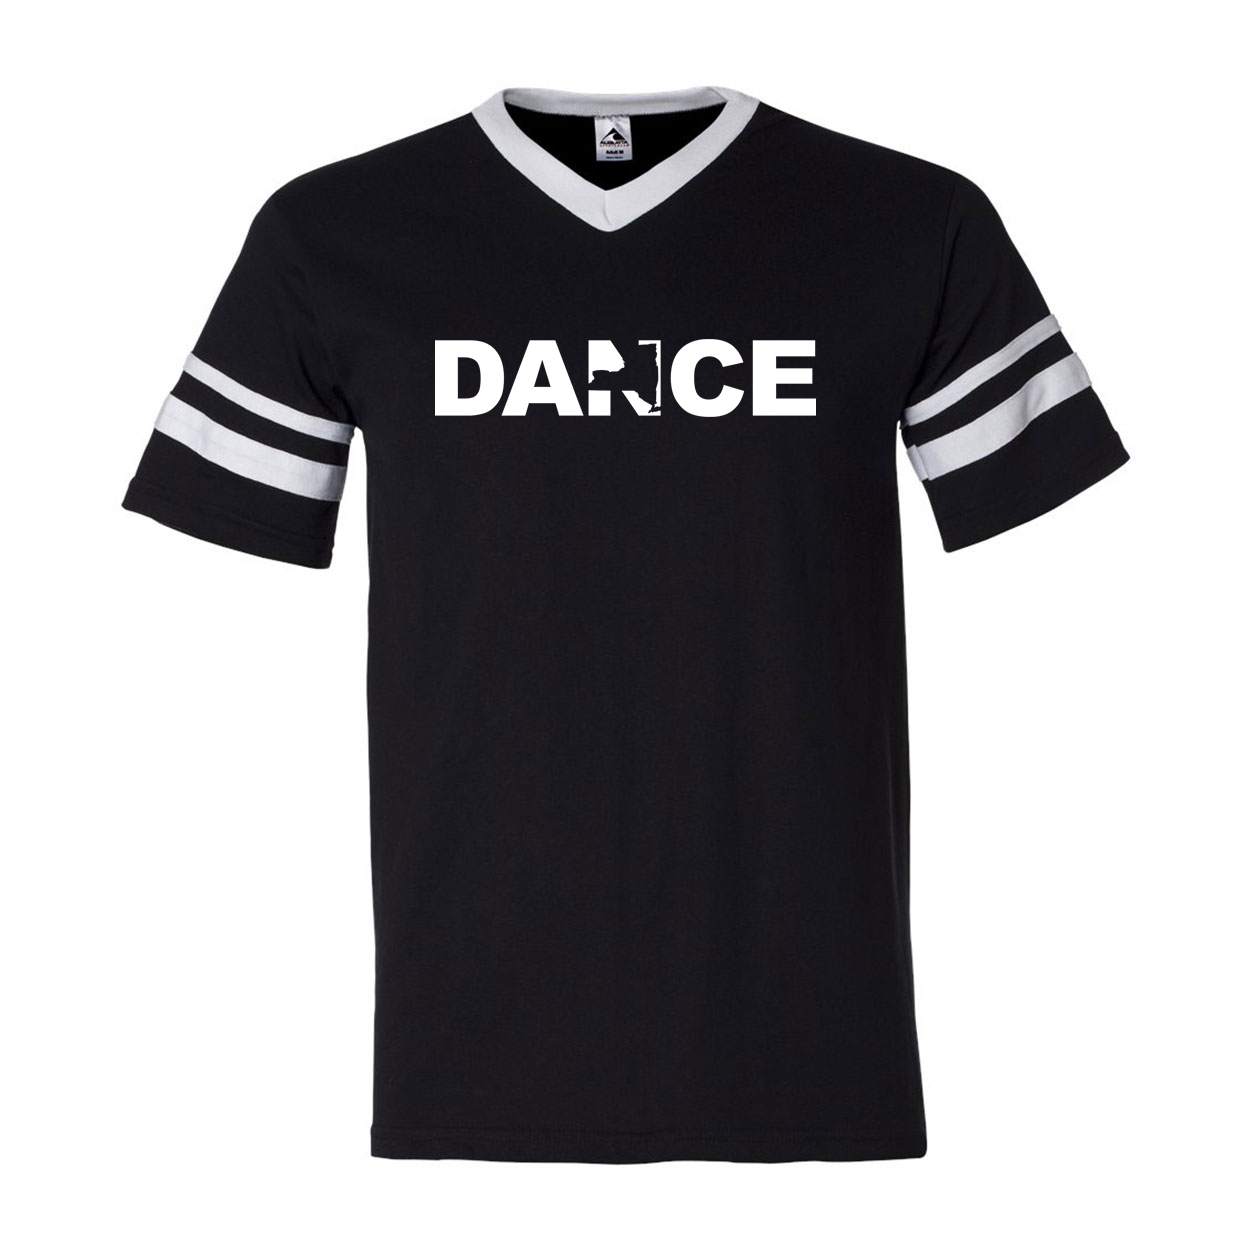 Dance New York Classic Premium Striped Jersey T-Shirt Black/White (White Logo)